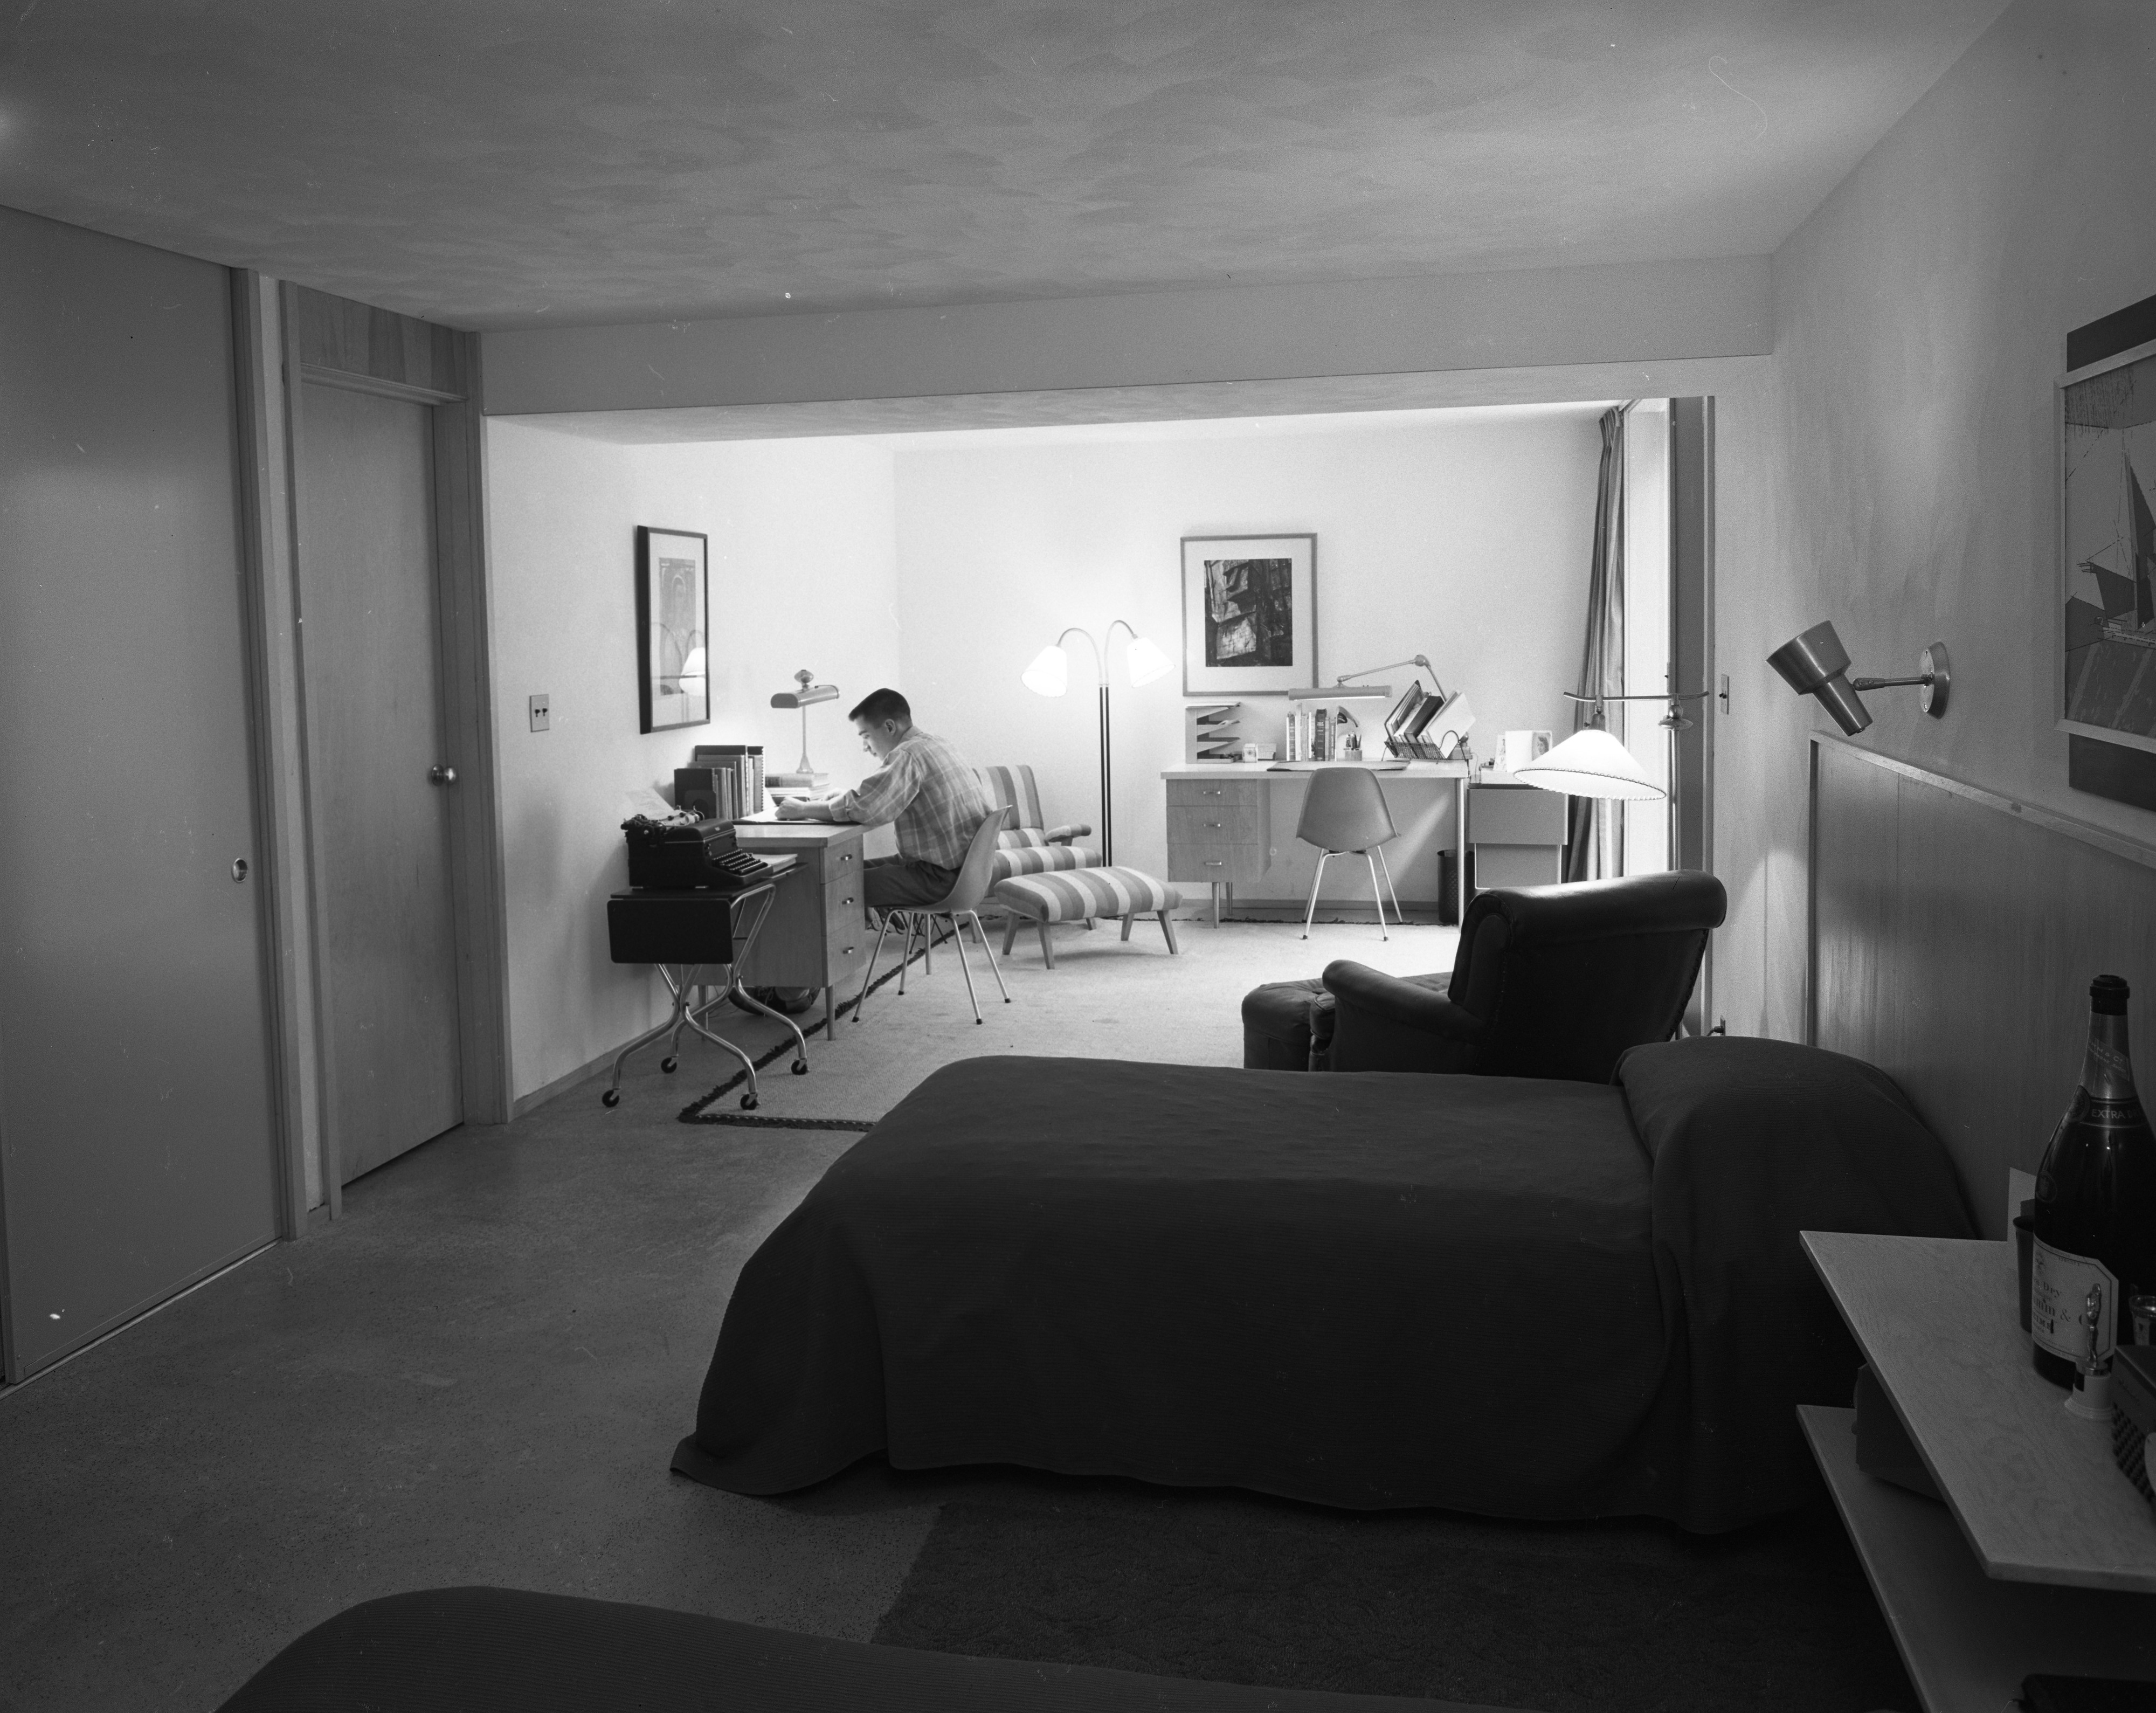 Image of: Bedroom Study Room In Forsythe Mid Century Modern Home On Barton Shore Drive January 1956 Ann Arbor District Library